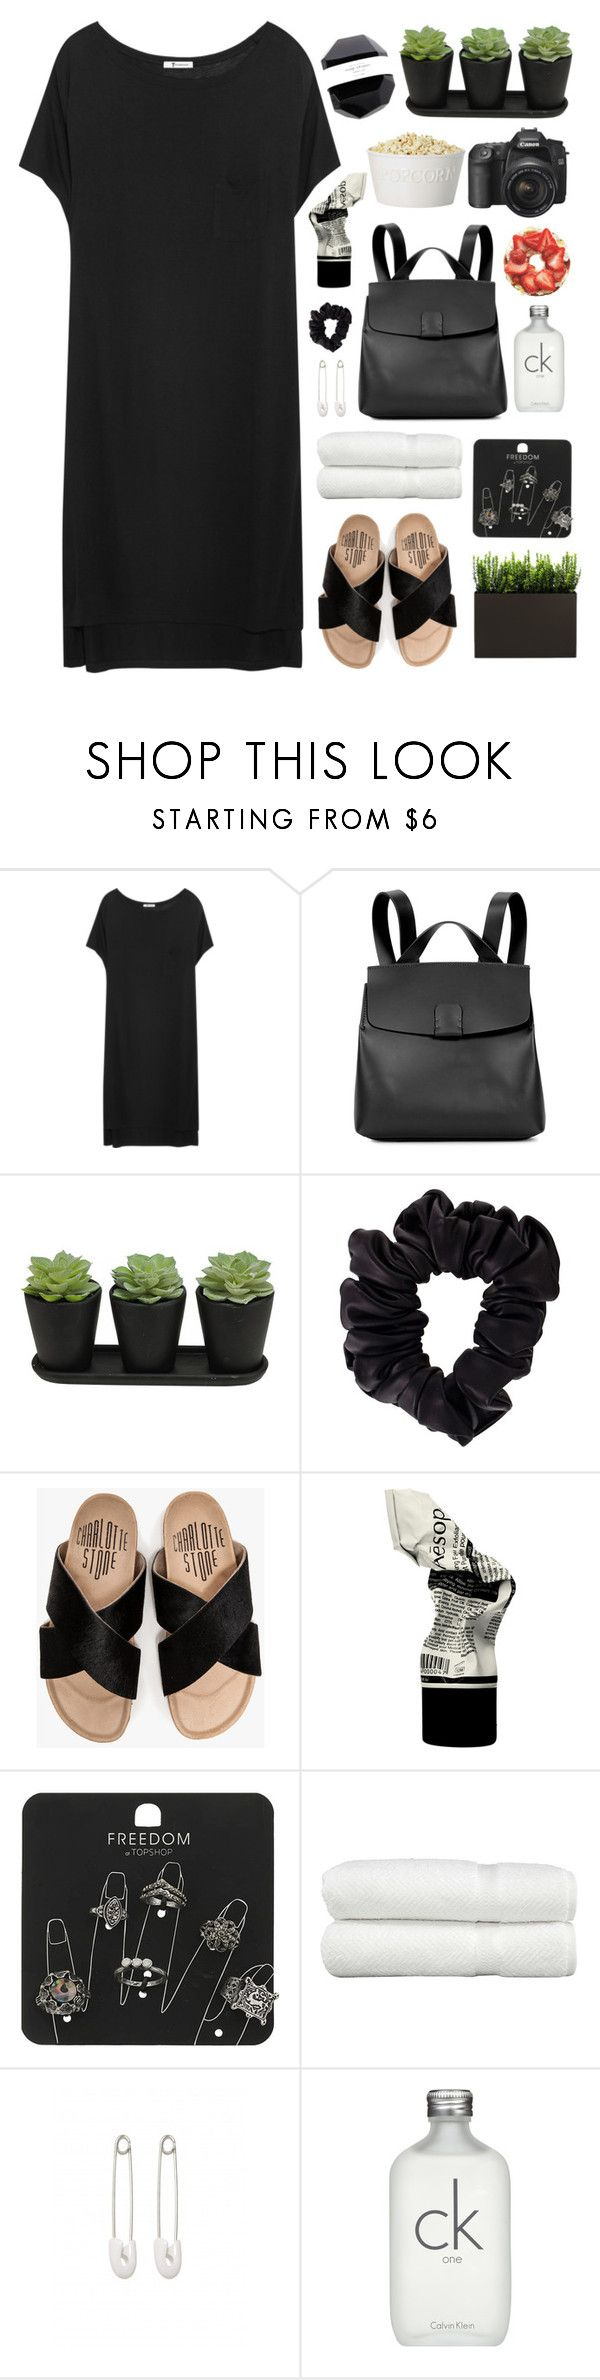 """""""Sin título #2603"""" by liliblue ❤ liked on Polyvore featuring T By Alexander Wang, Nico Giani, American Apparel, Charlotte Stone, Aesop, Topshop, Linum Home Textiles, Kristin Cavallari and Calvin Klein"""